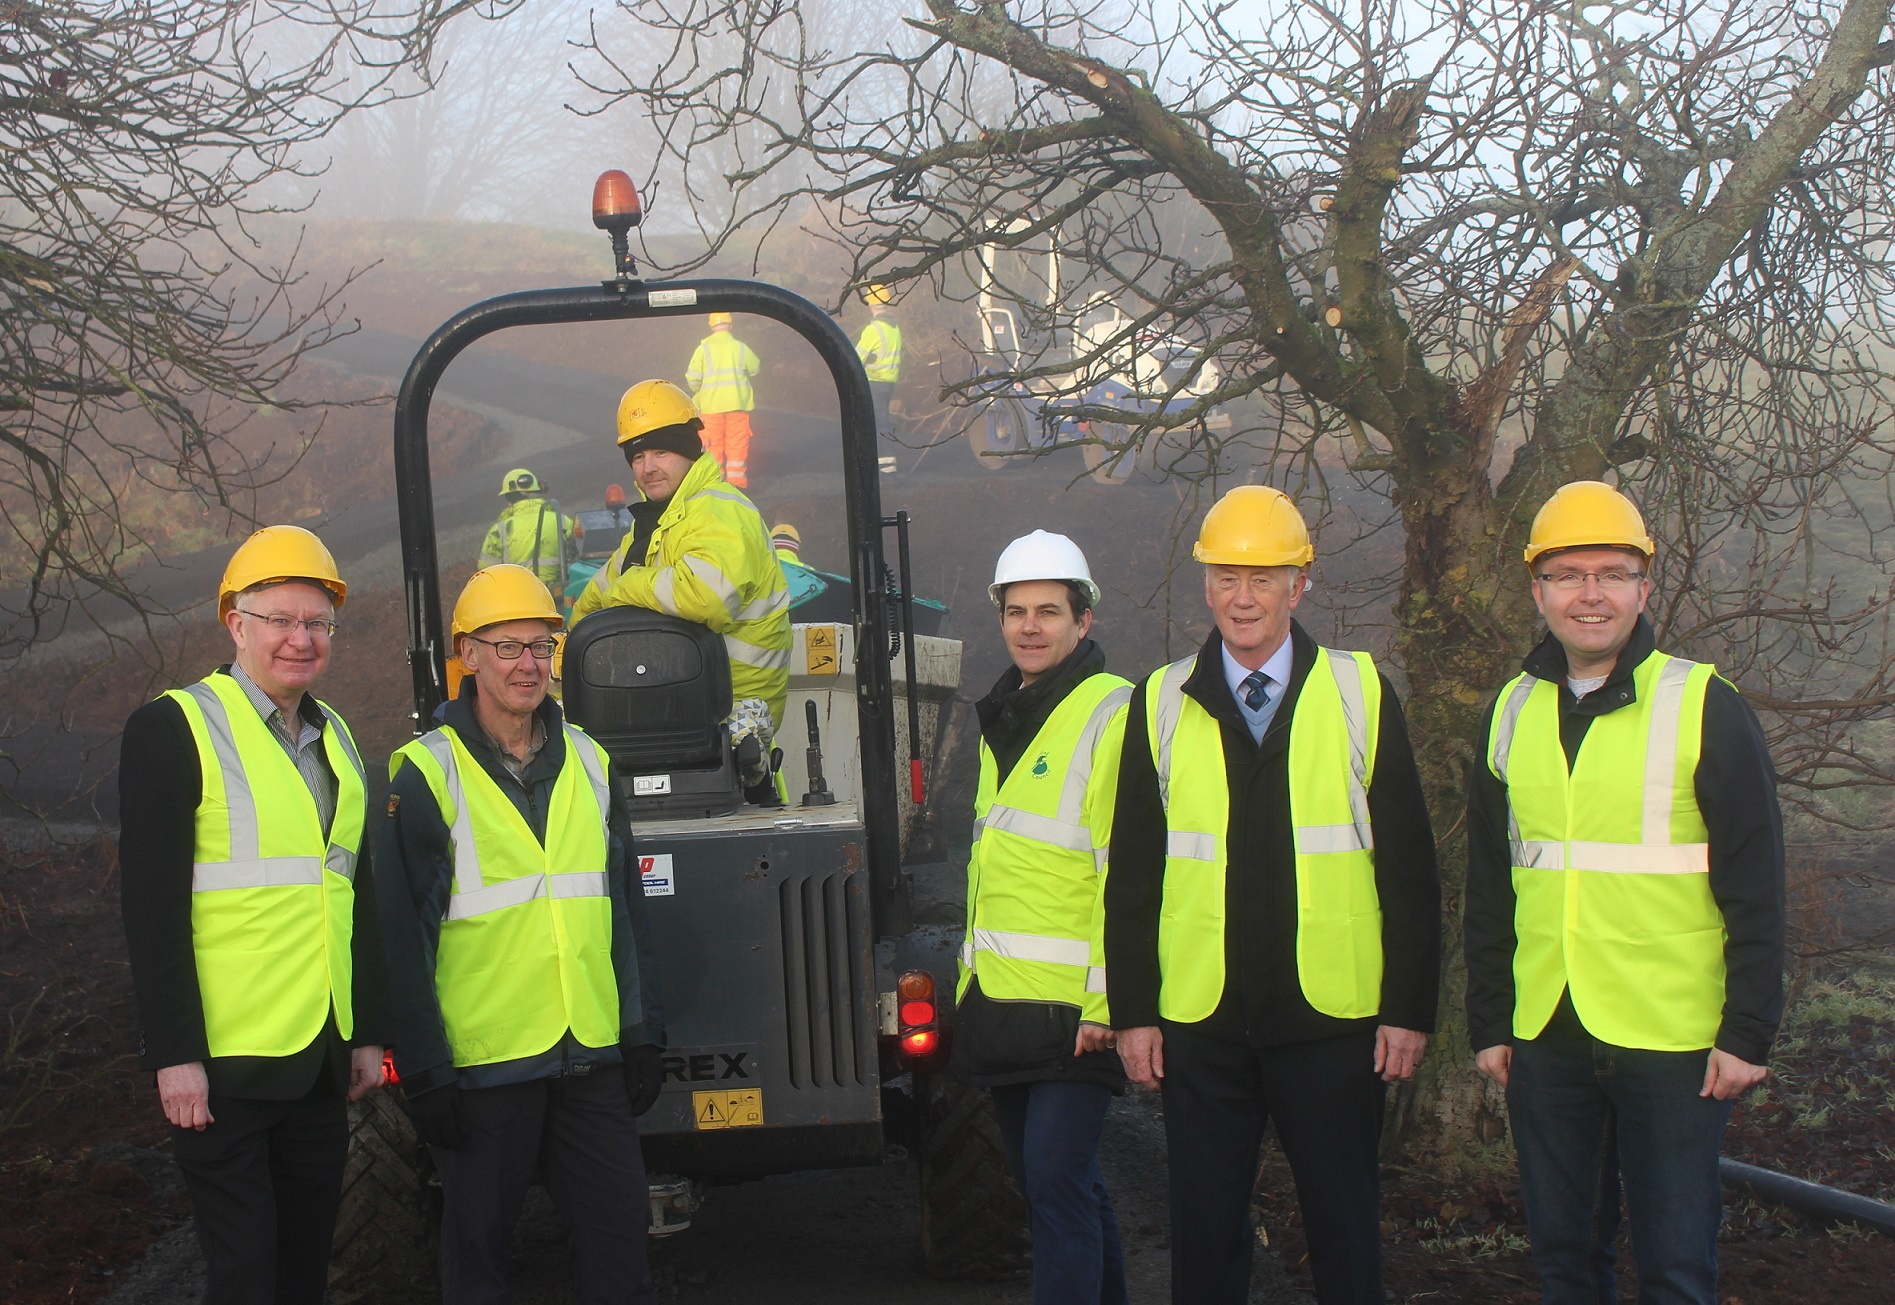 Pictured with members of the land services team, l-r: Cllr Jim Thomson; King's Park Paths group leader, Andrew Hipkin, assistant projects officer Colin MacDonald; Stirling Golf Club representative, George Clelland; Cllr Danny Gibson.